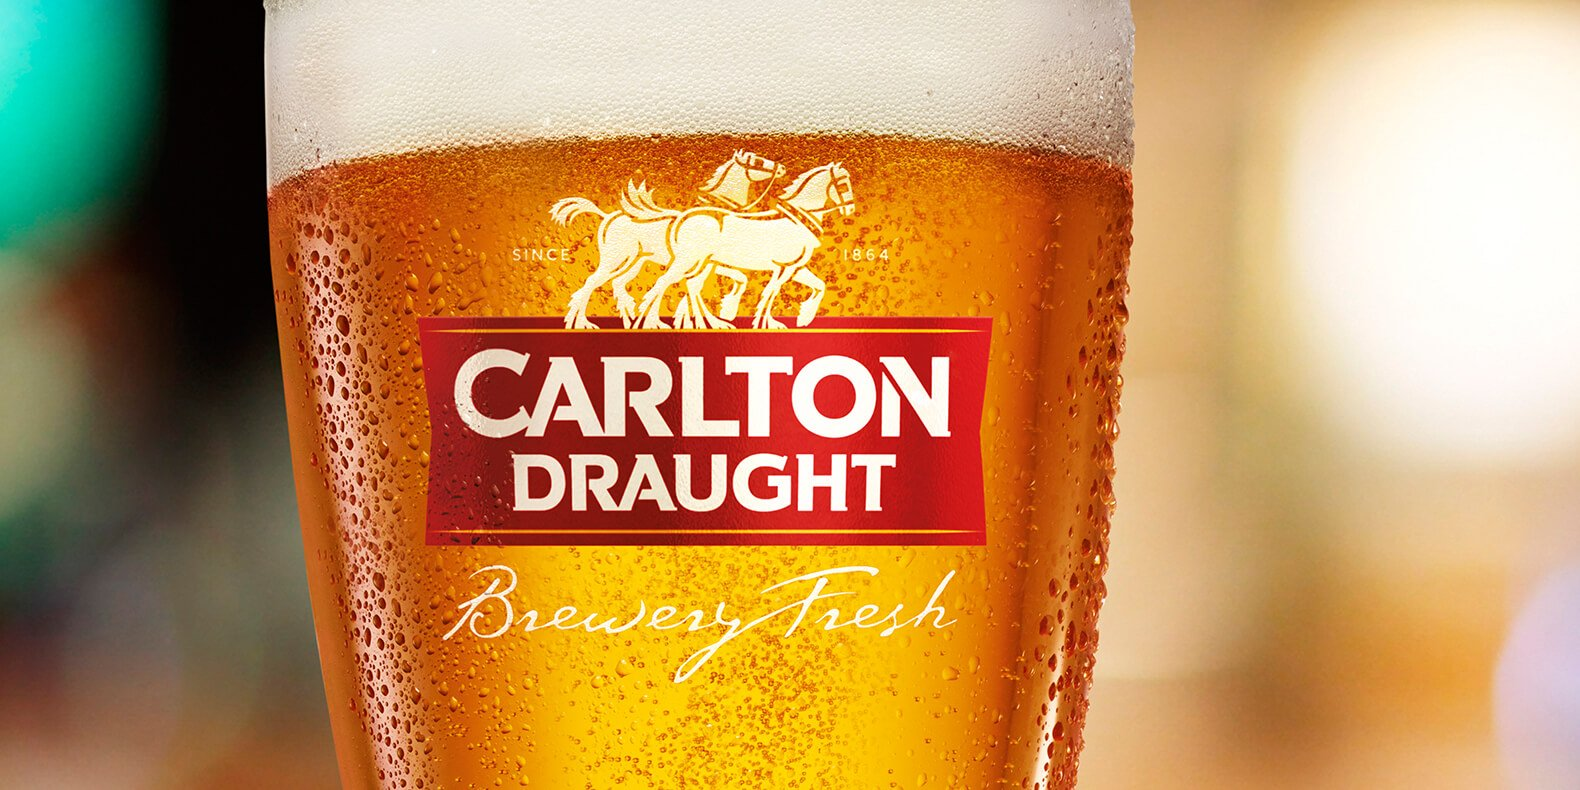 7442b6a2a58d6a991f8eec30e557691715b7f639 1 - A nice advert for Carlton Draught, an Australian beer